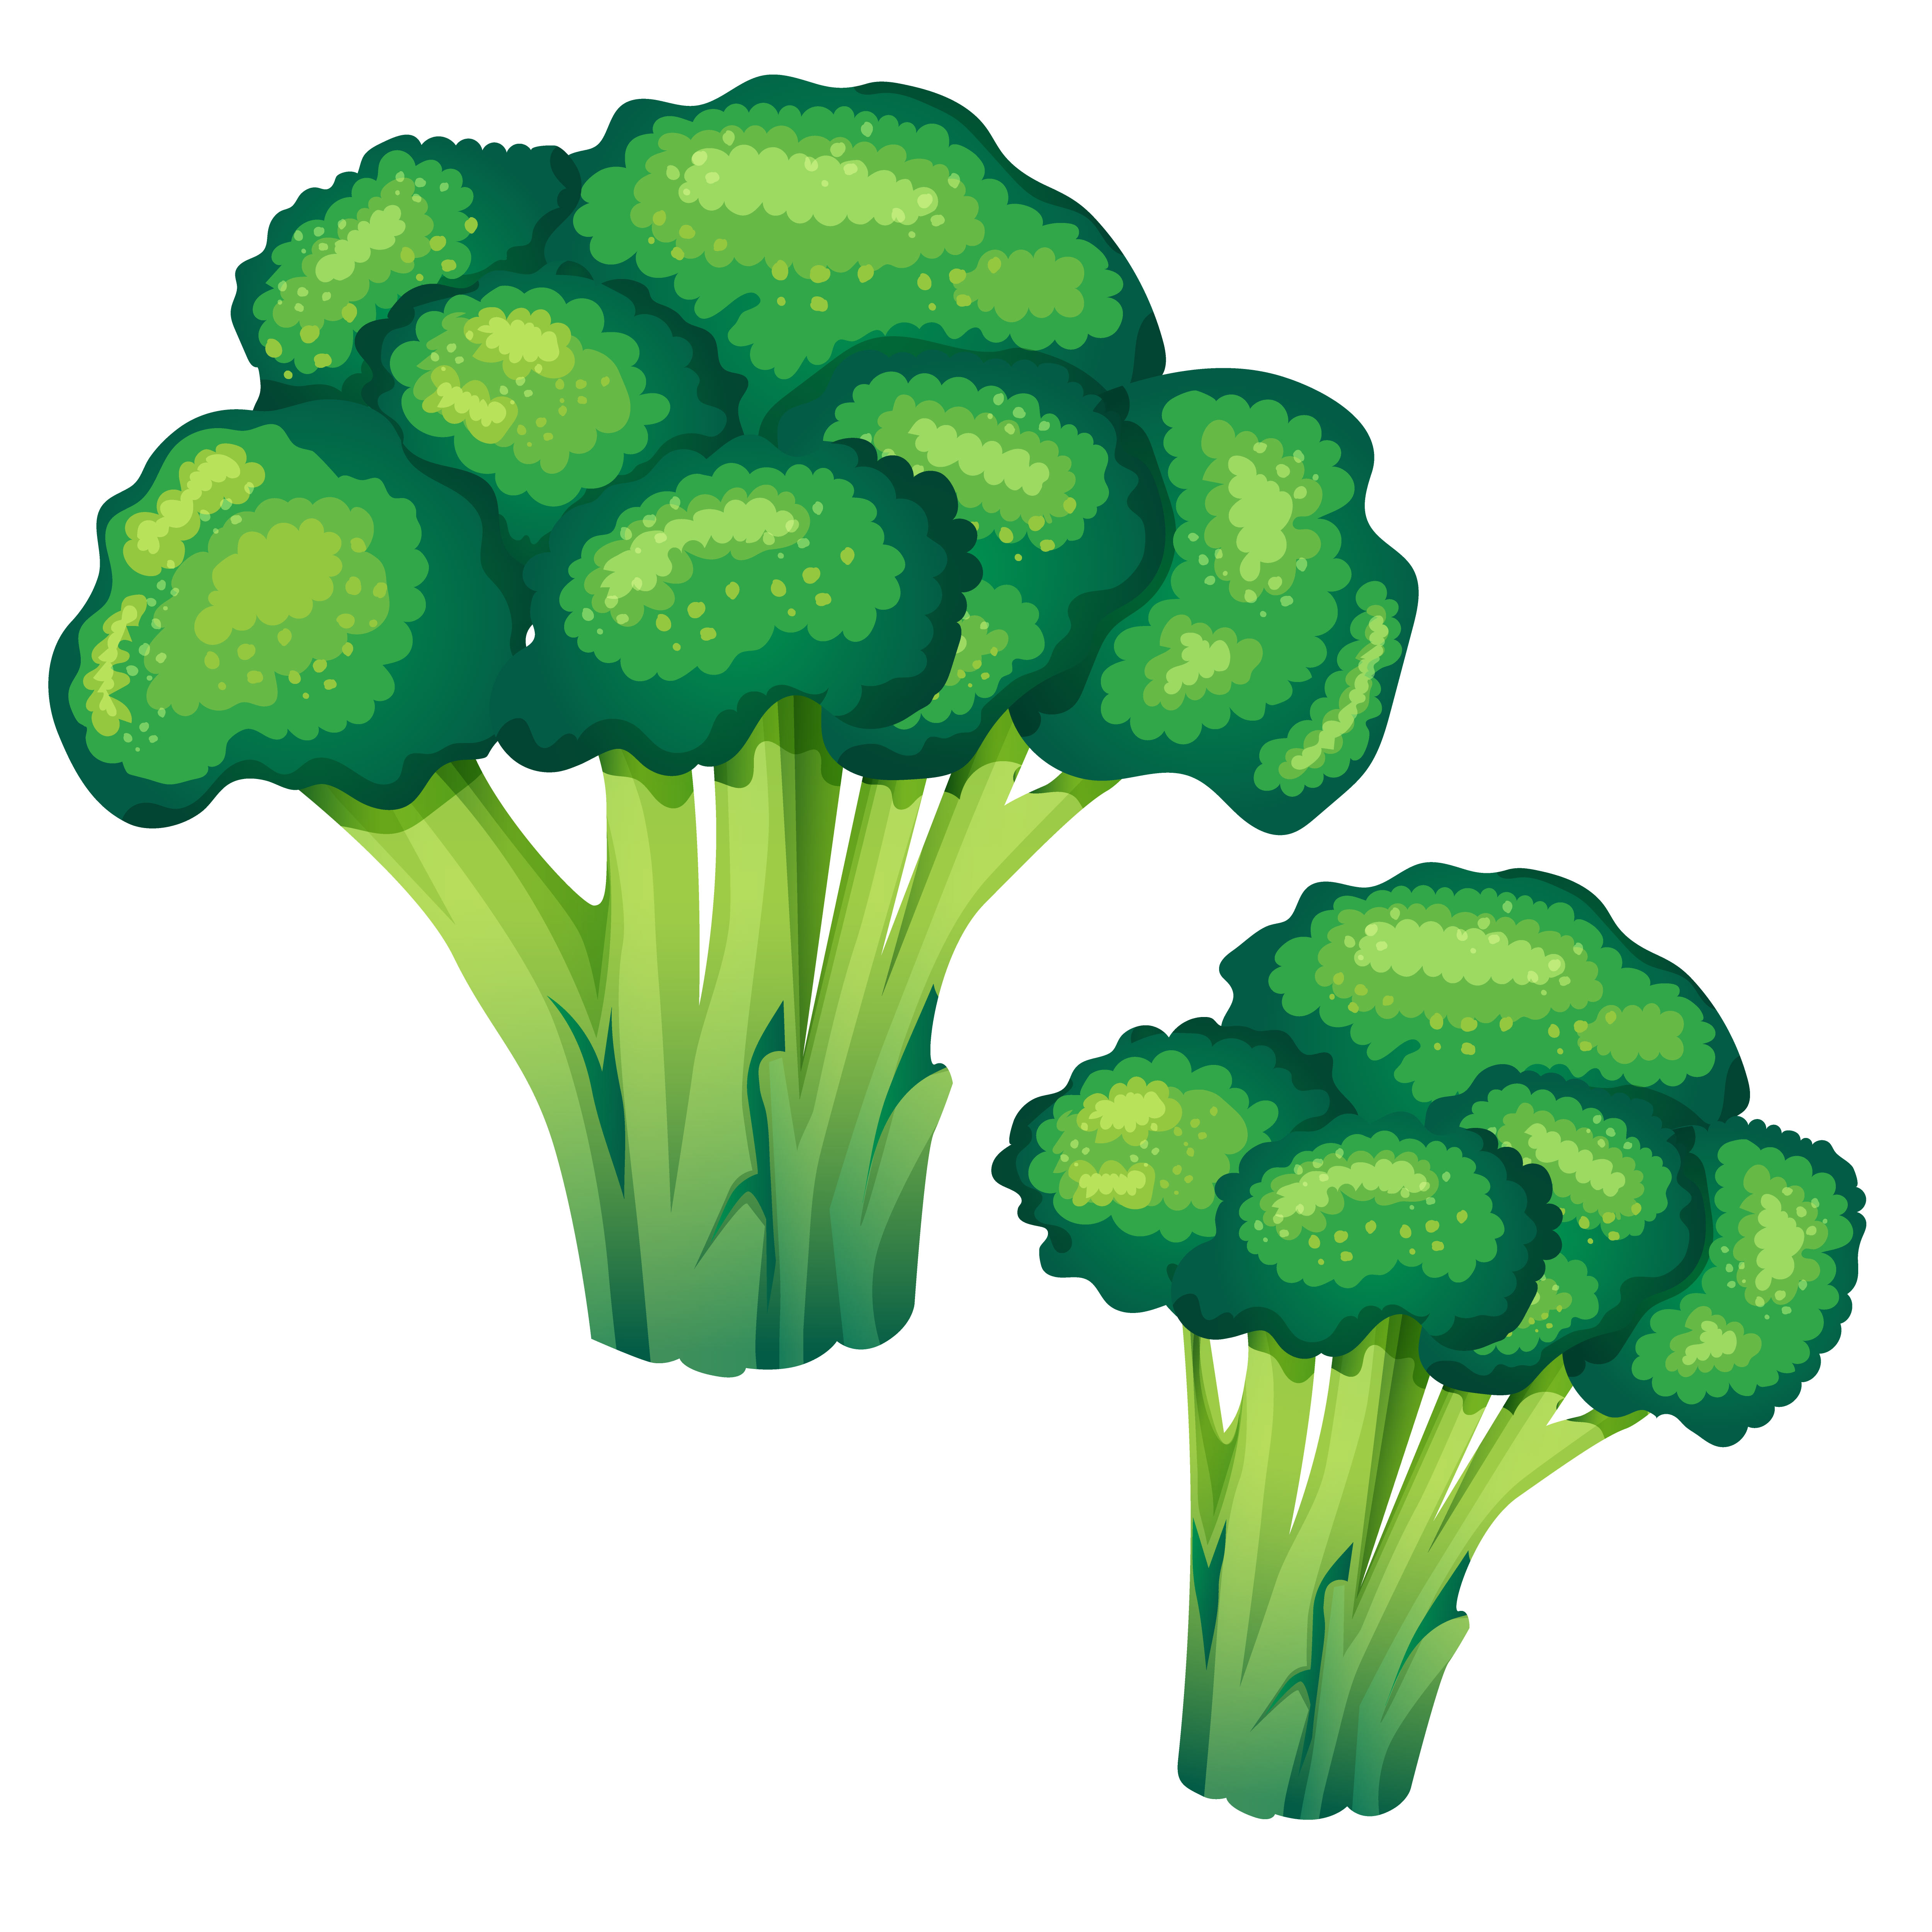 broccoli vector illustration download free vectors clipart graphics vector art vecteezy